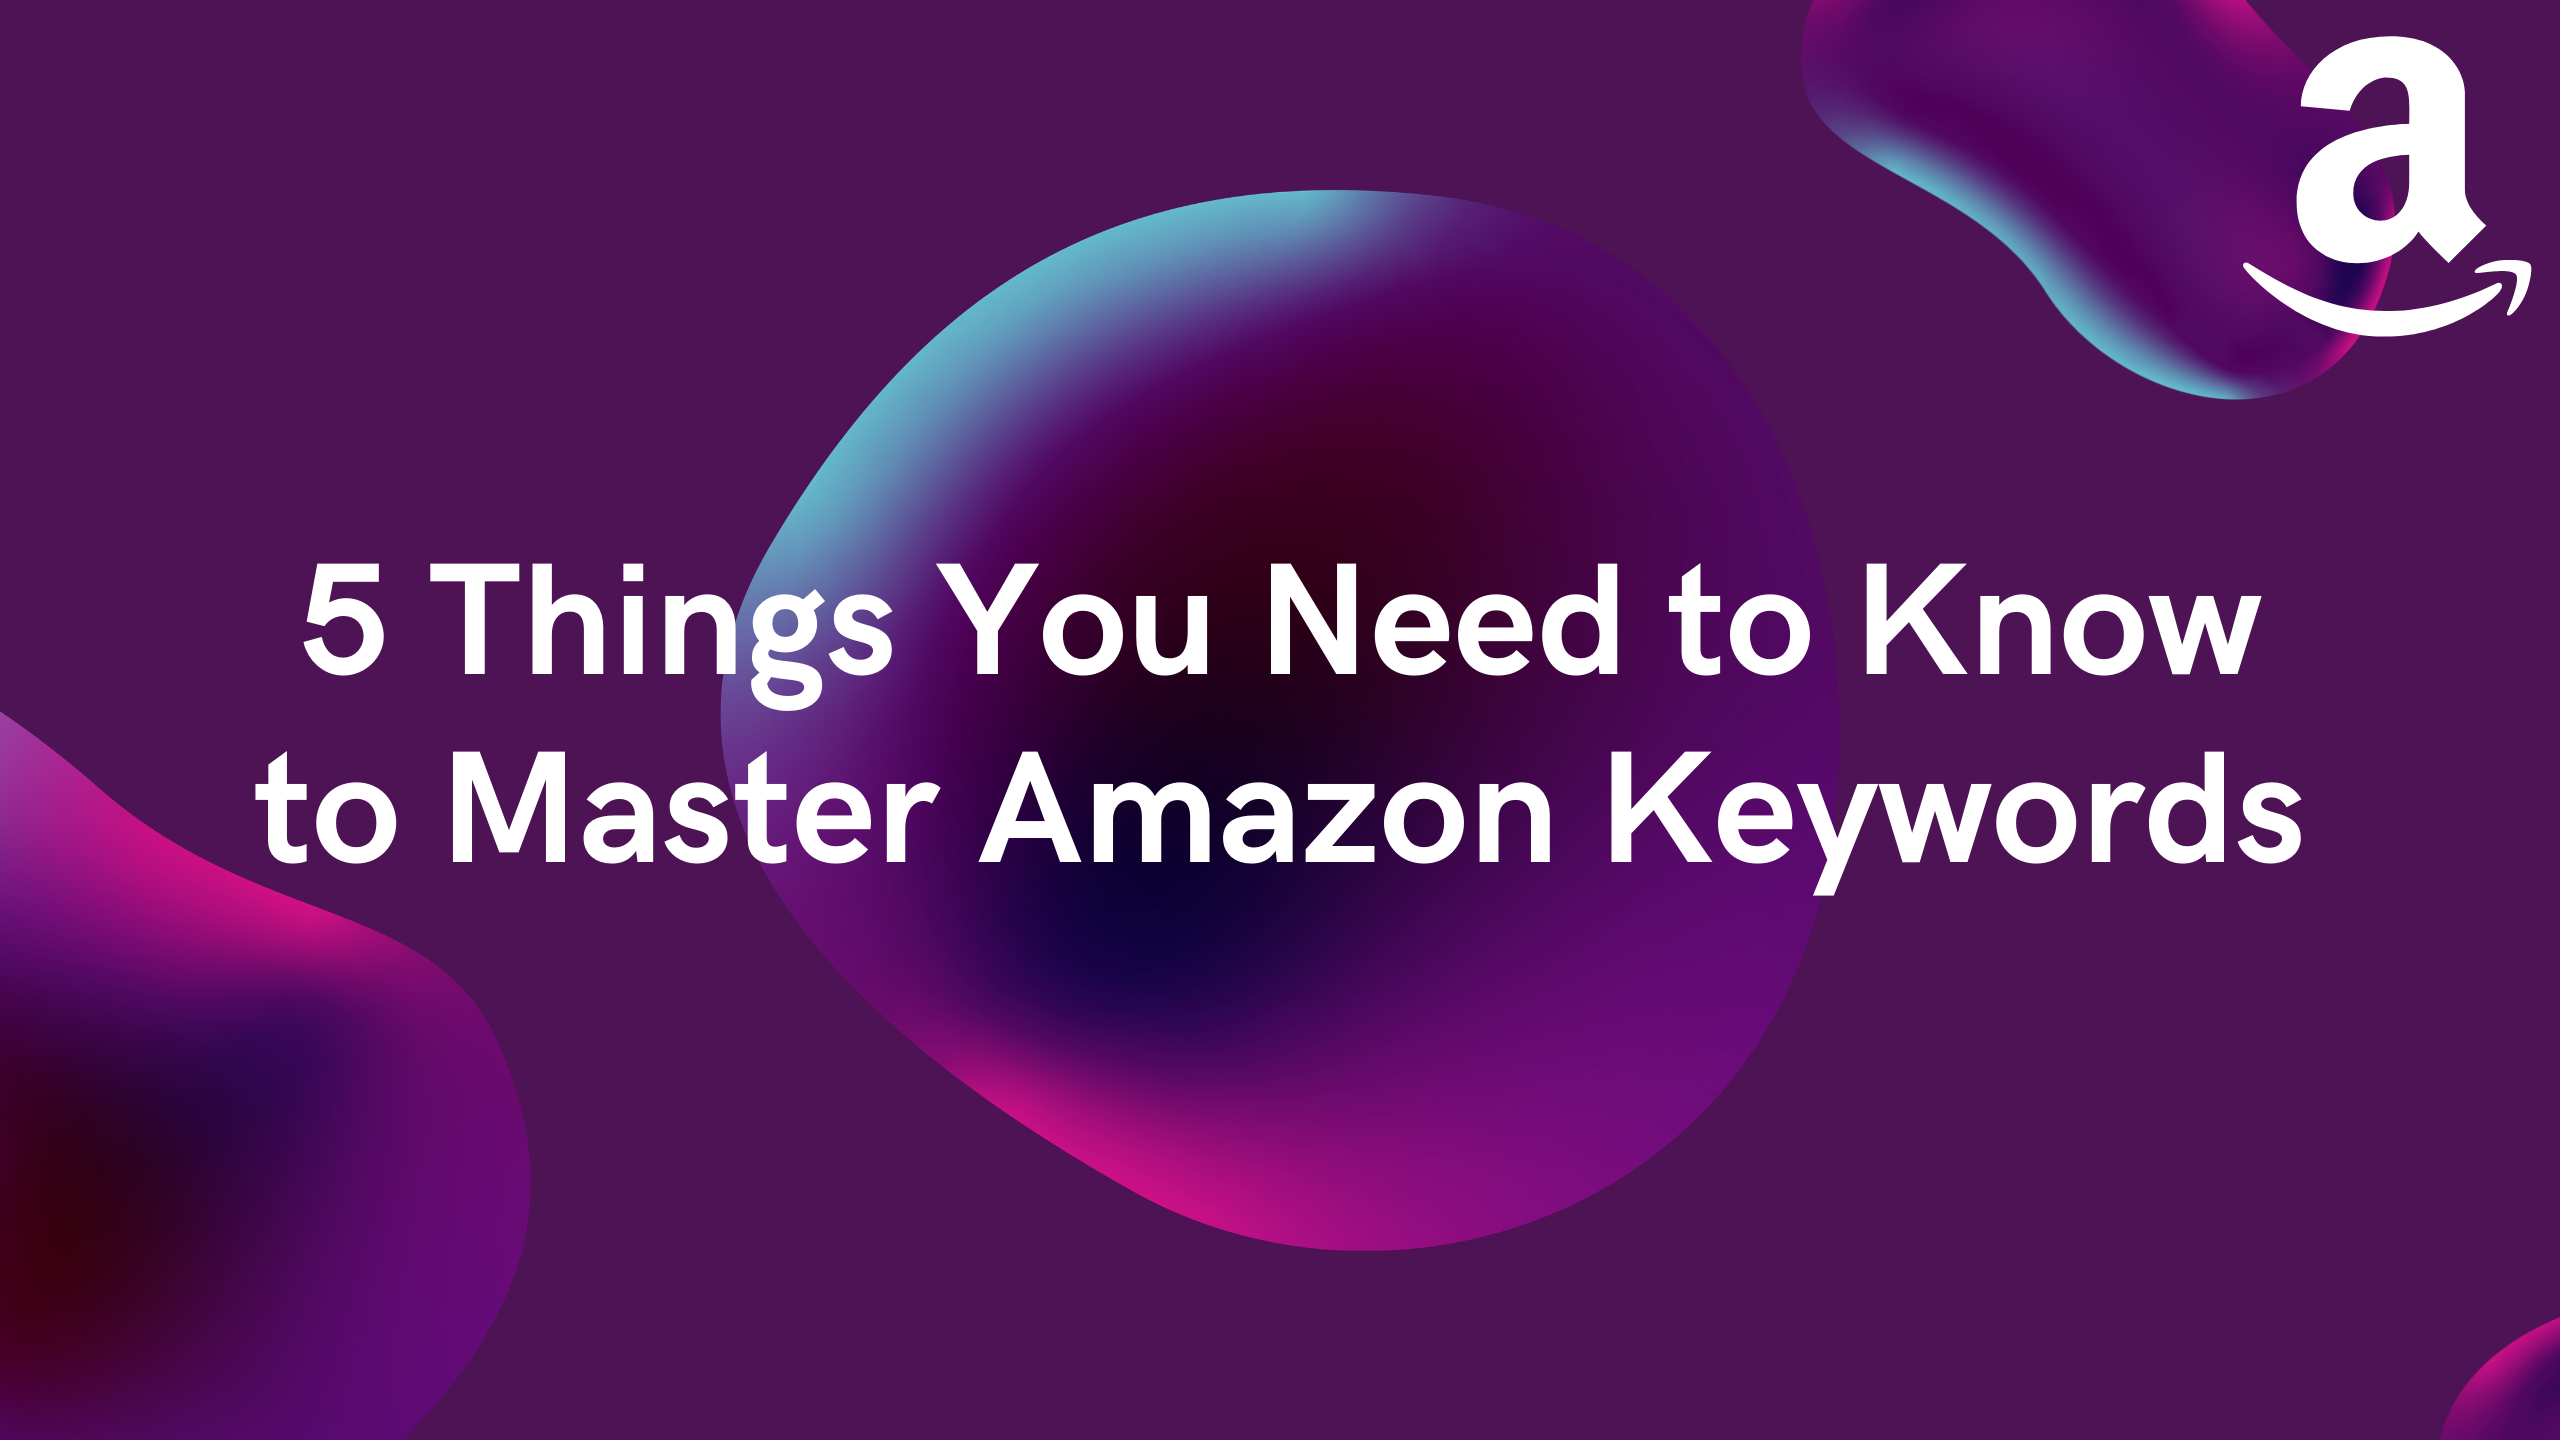 5 Things You Need to Know to Master Amazon Keywords